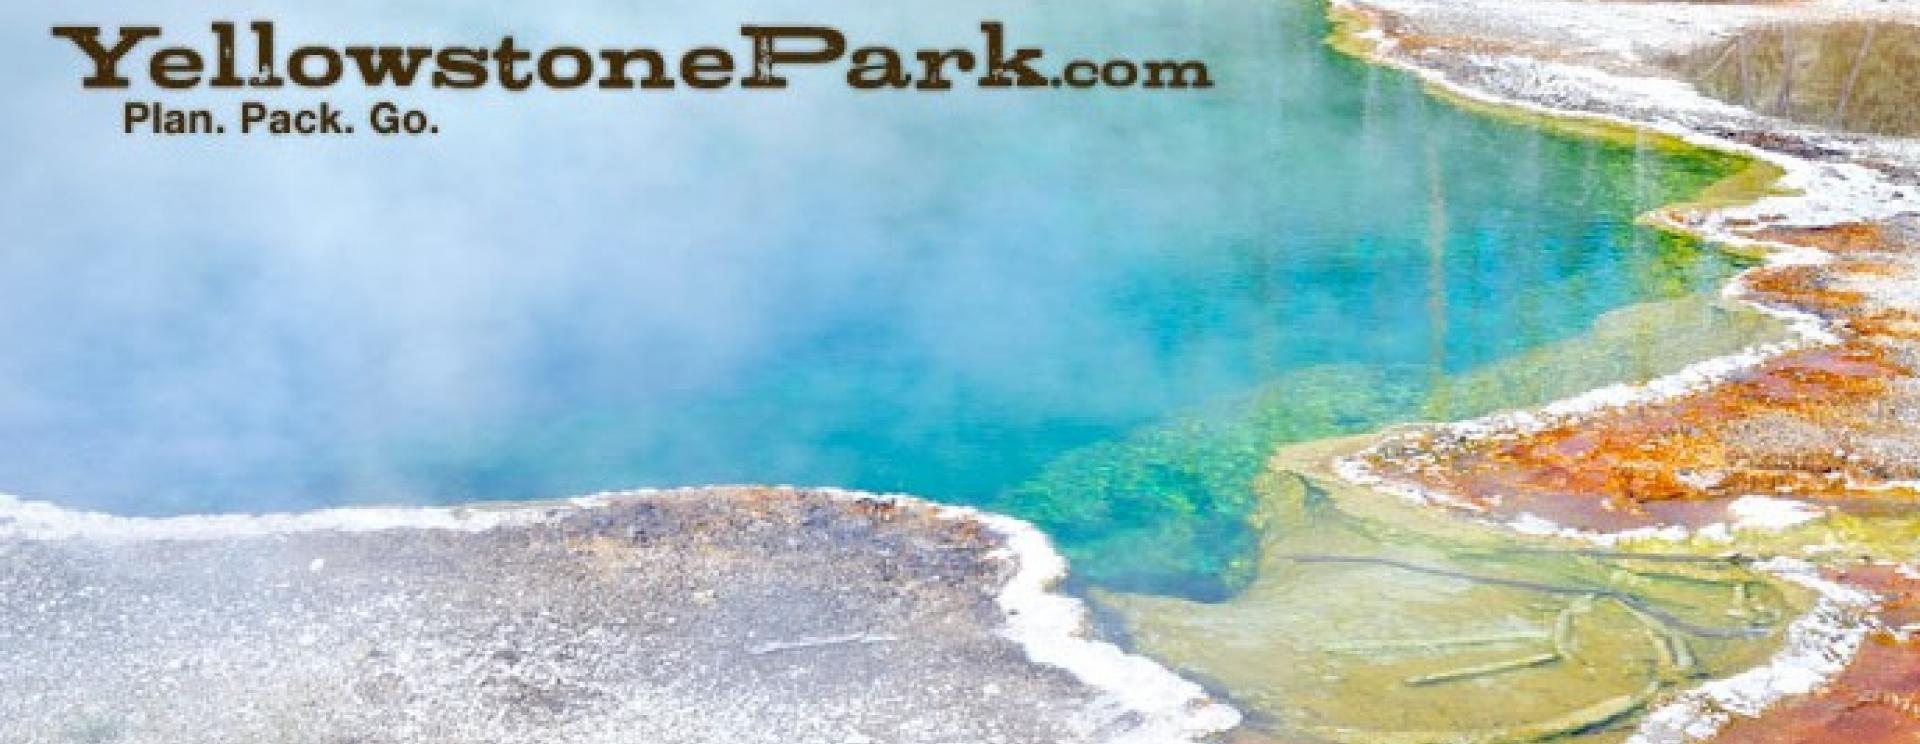 National Park Trips Media-Yellowstone Journal